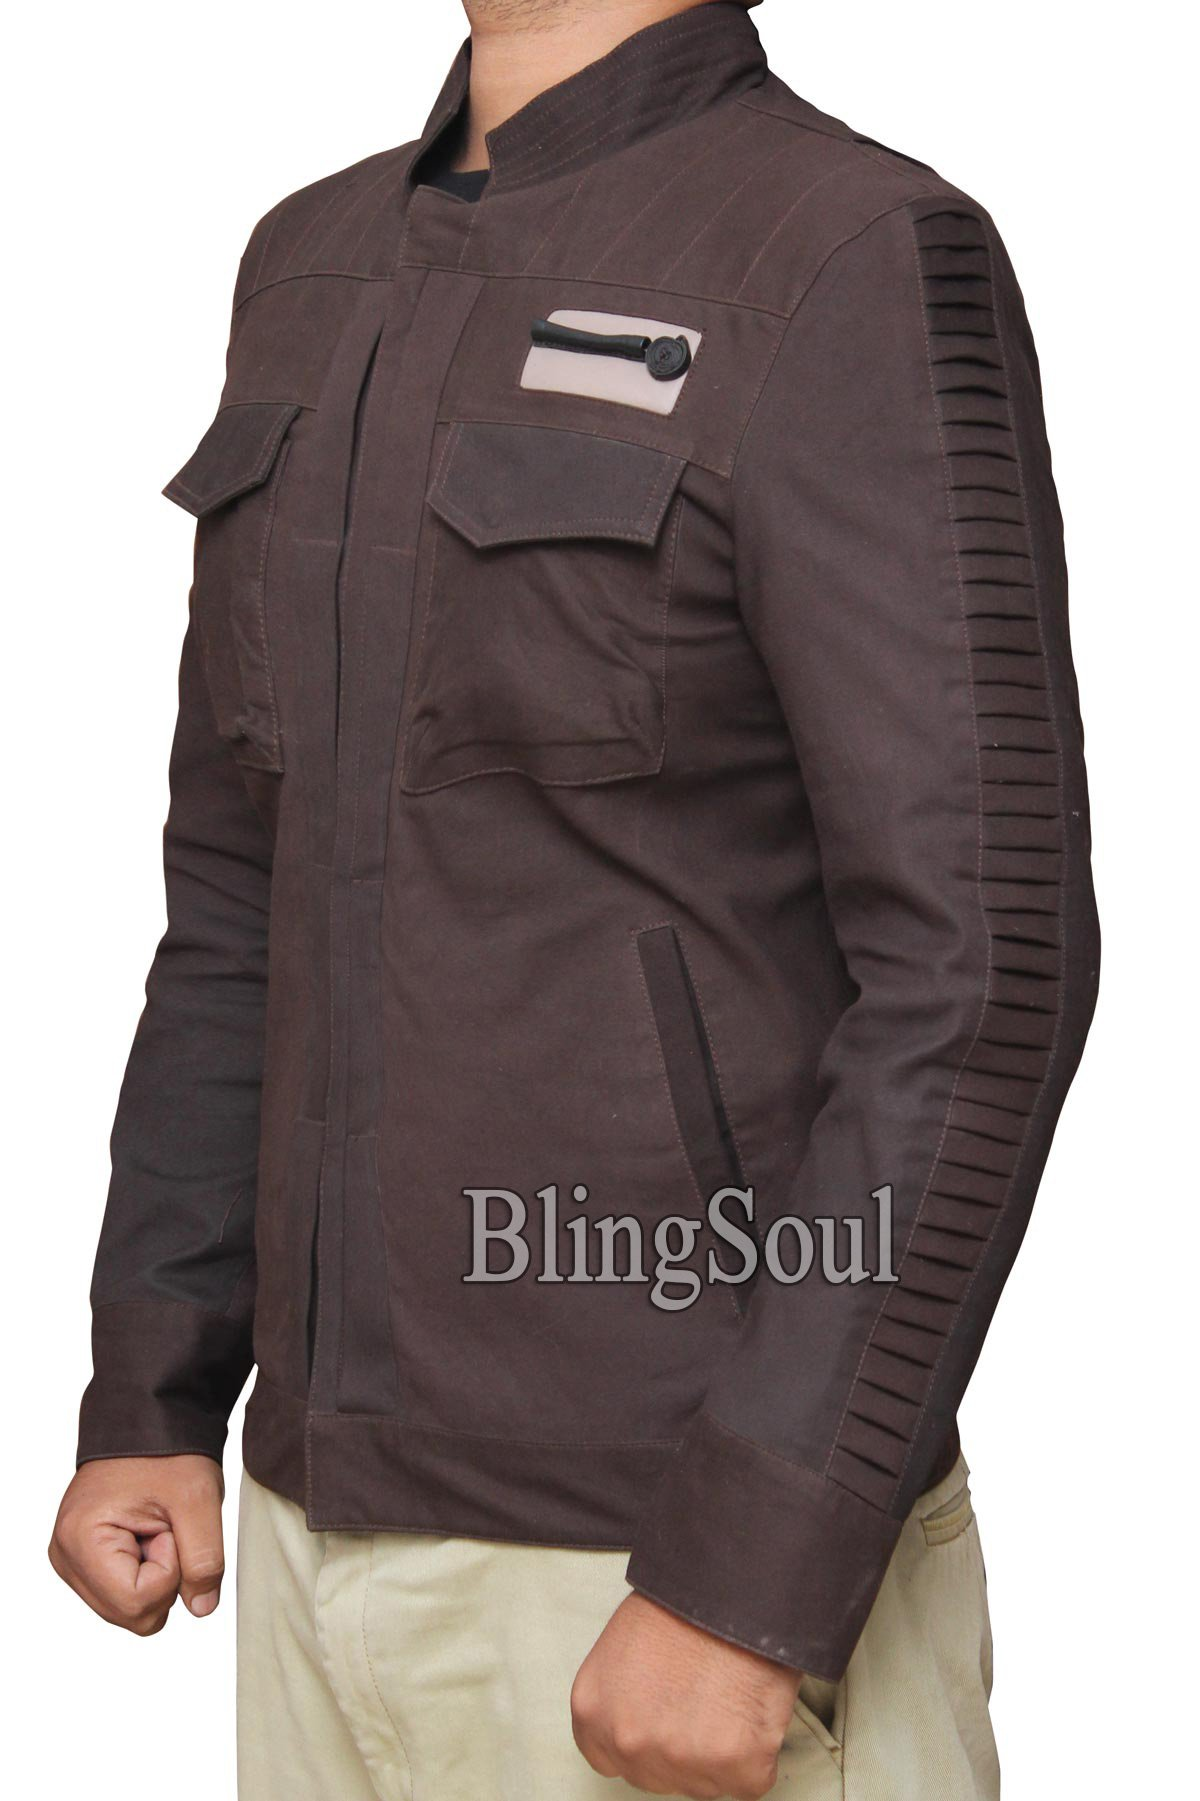 Star Wars Captain Cassian Andor Movie Jacket - Rogue One Diego Luna Brown Jacket Collection (L, Brown) by BlingSoul (Image #2)